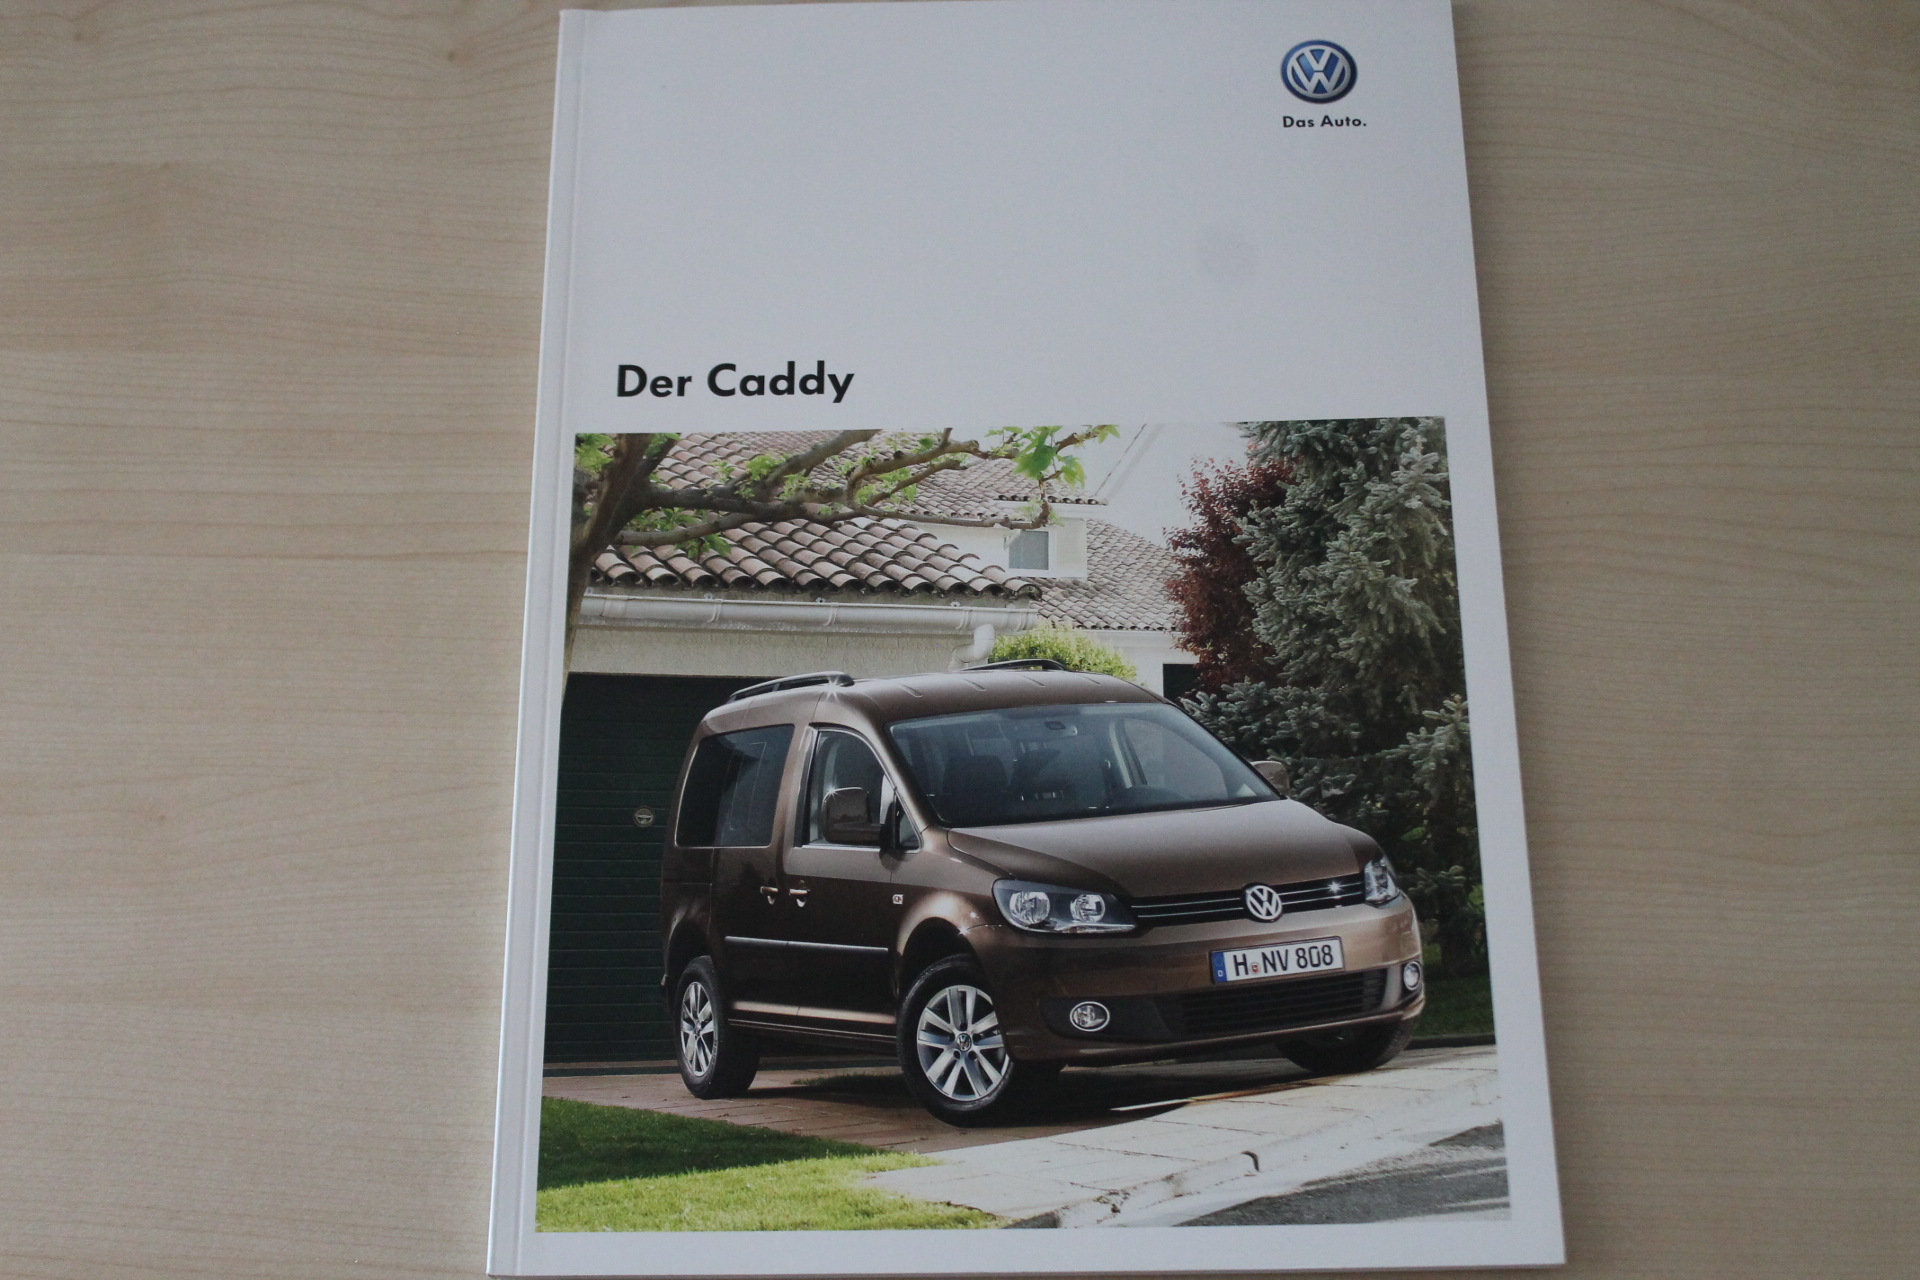 VW Caddy Prospekt 05/2011